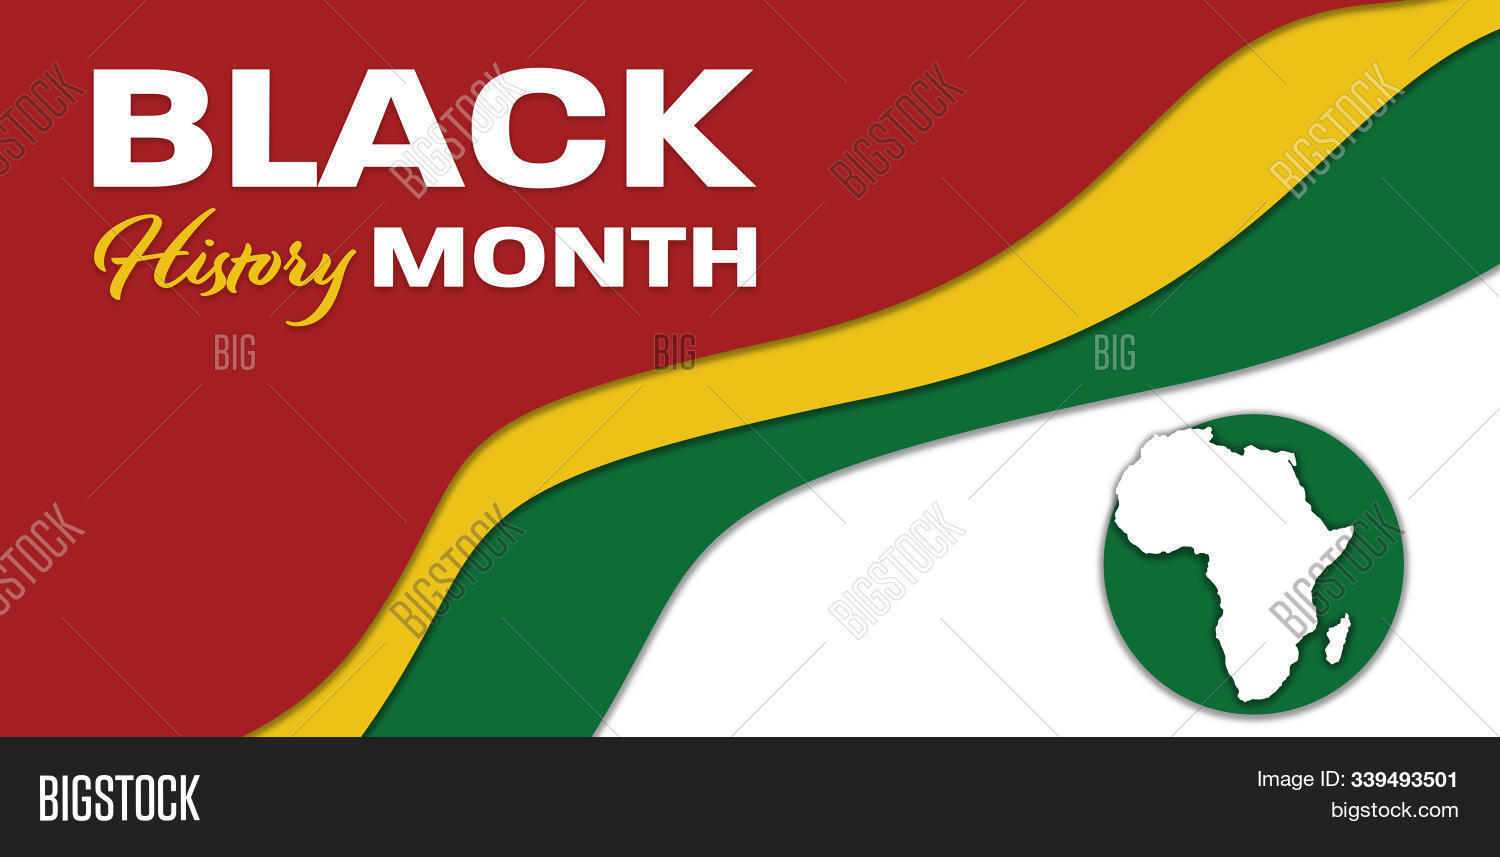 Black History Month Image Photo Free Trial Bigstock